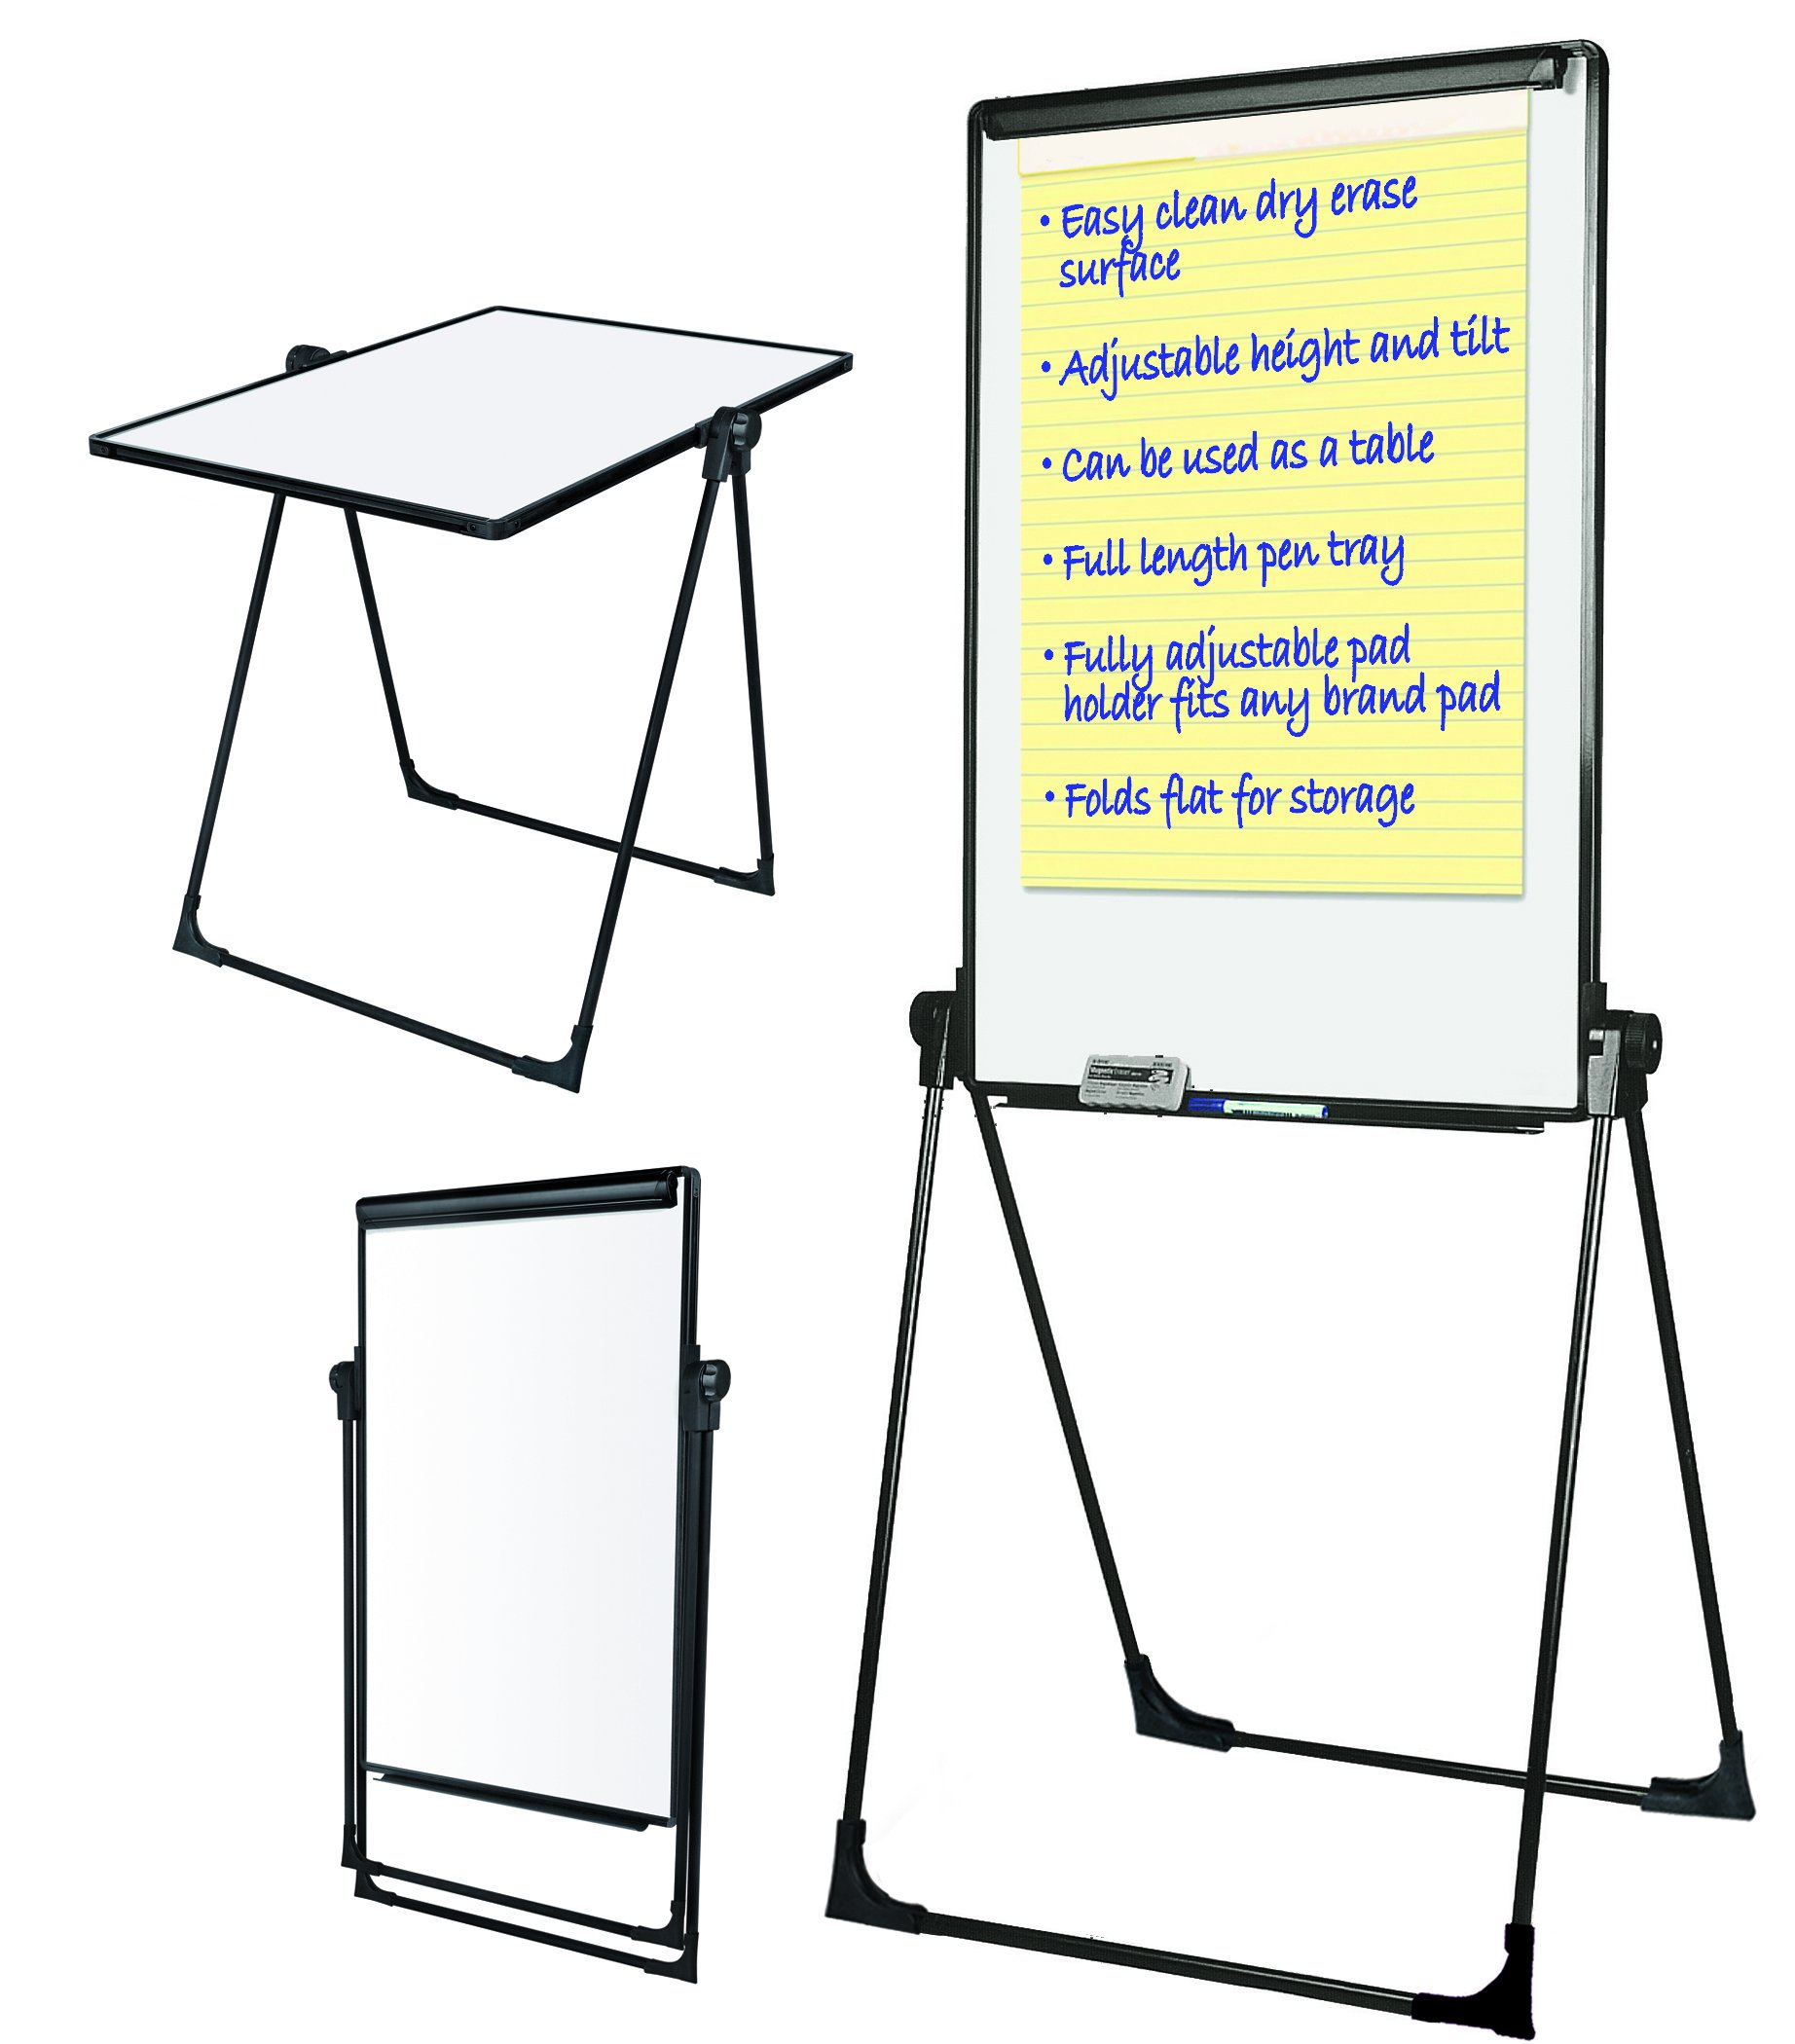 MasterVision Presentation Easel, Footbar Folds-to-a-Table Dry Erase, 29'' x 41'' Black by MasterVision